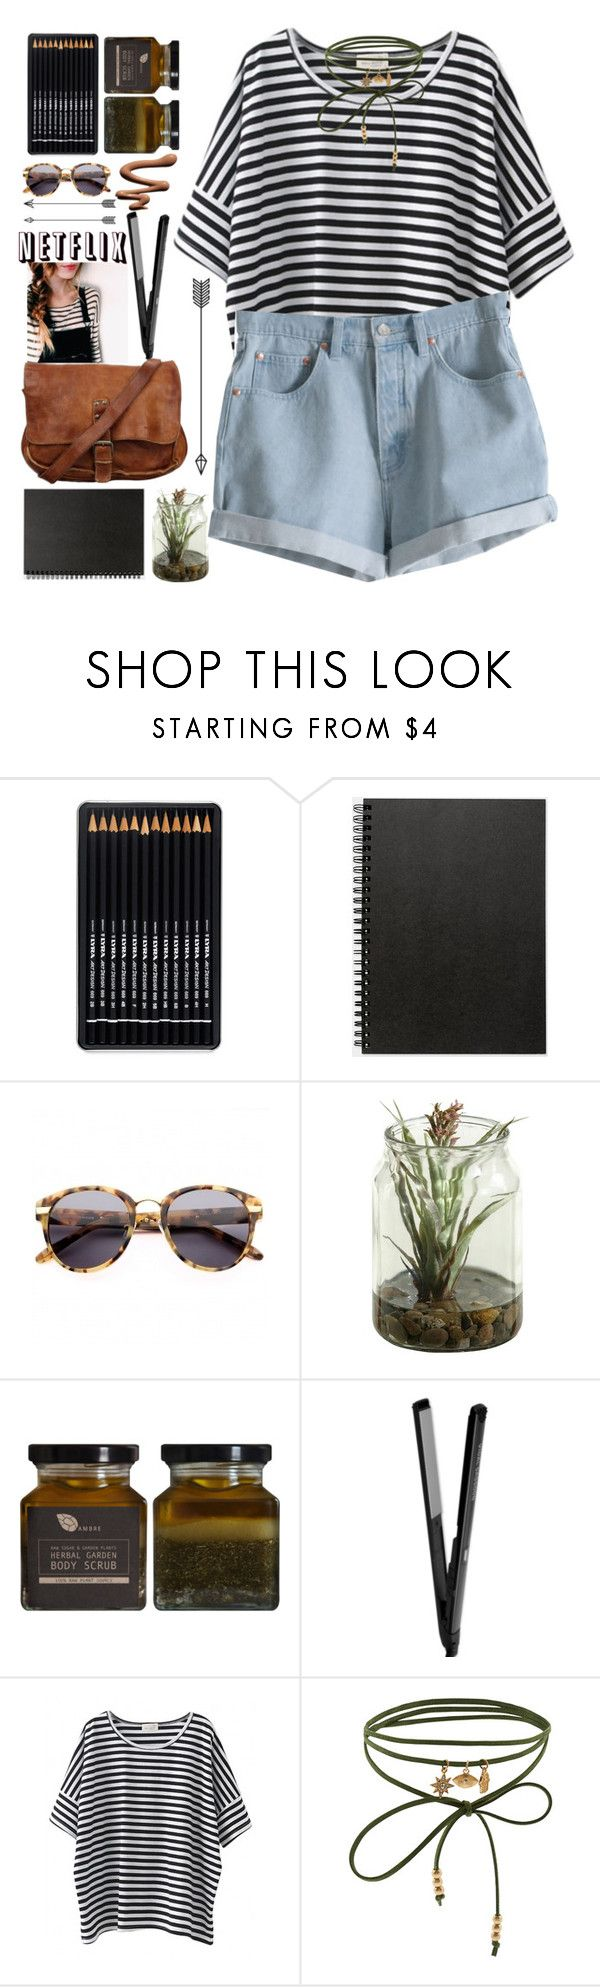 """""""*shorts*"""" by lolalevjesrcna ❤ liked on Polyvore featuring Muji, Alexander Wang, MTWTFSS Weekday, Accessorize and shorts"""